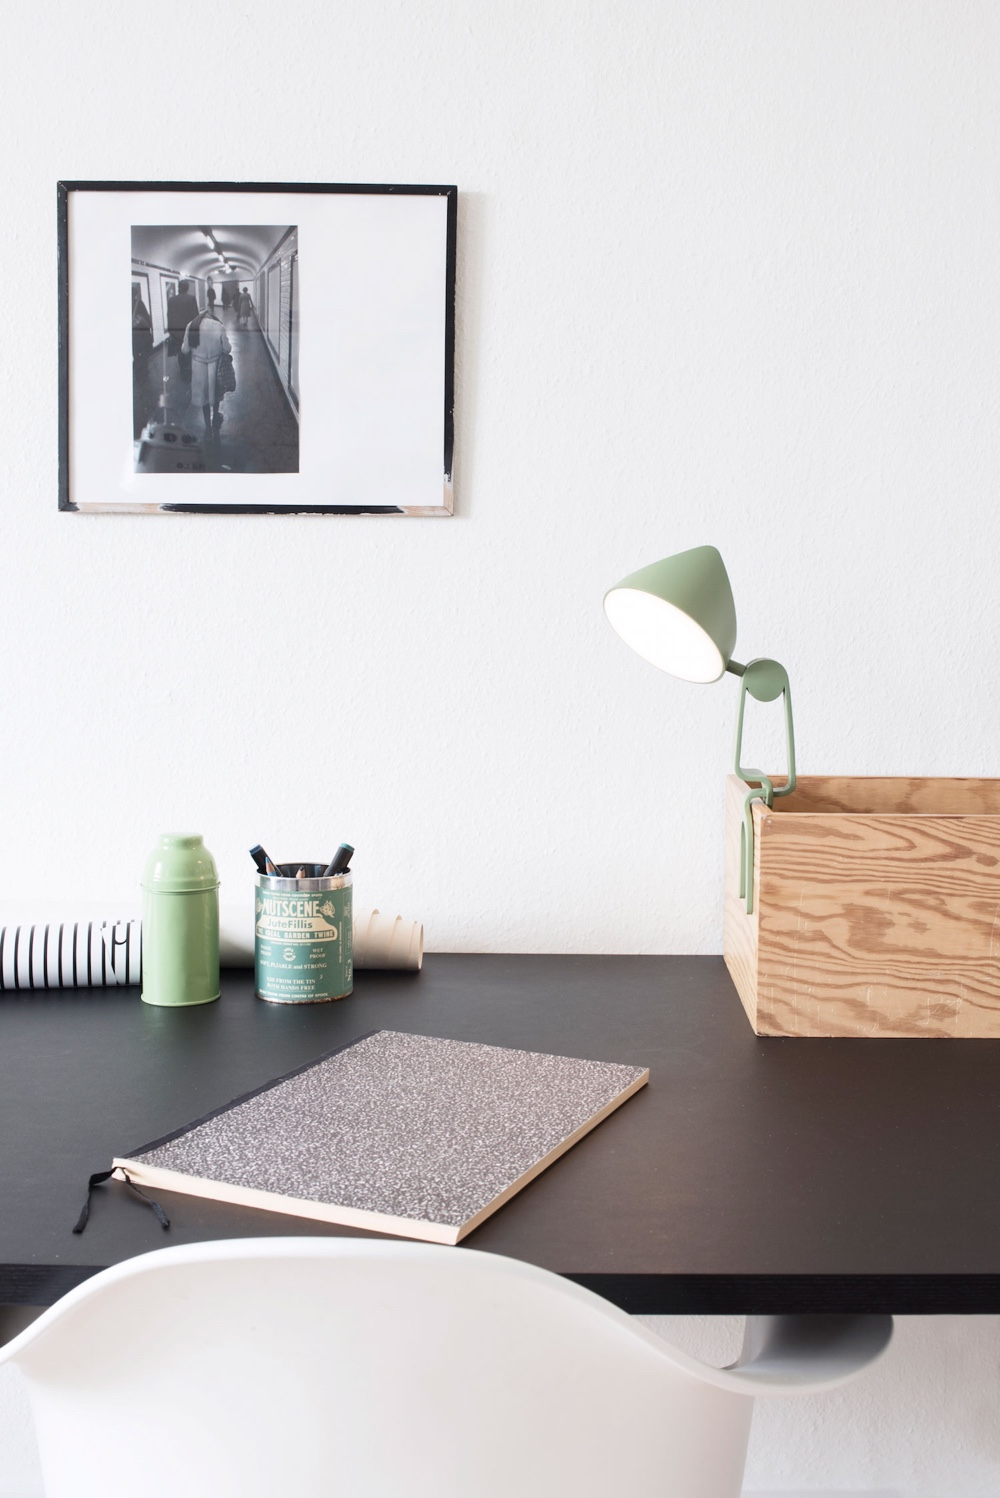 The Snap Lamp by Marie Hesseldahl.